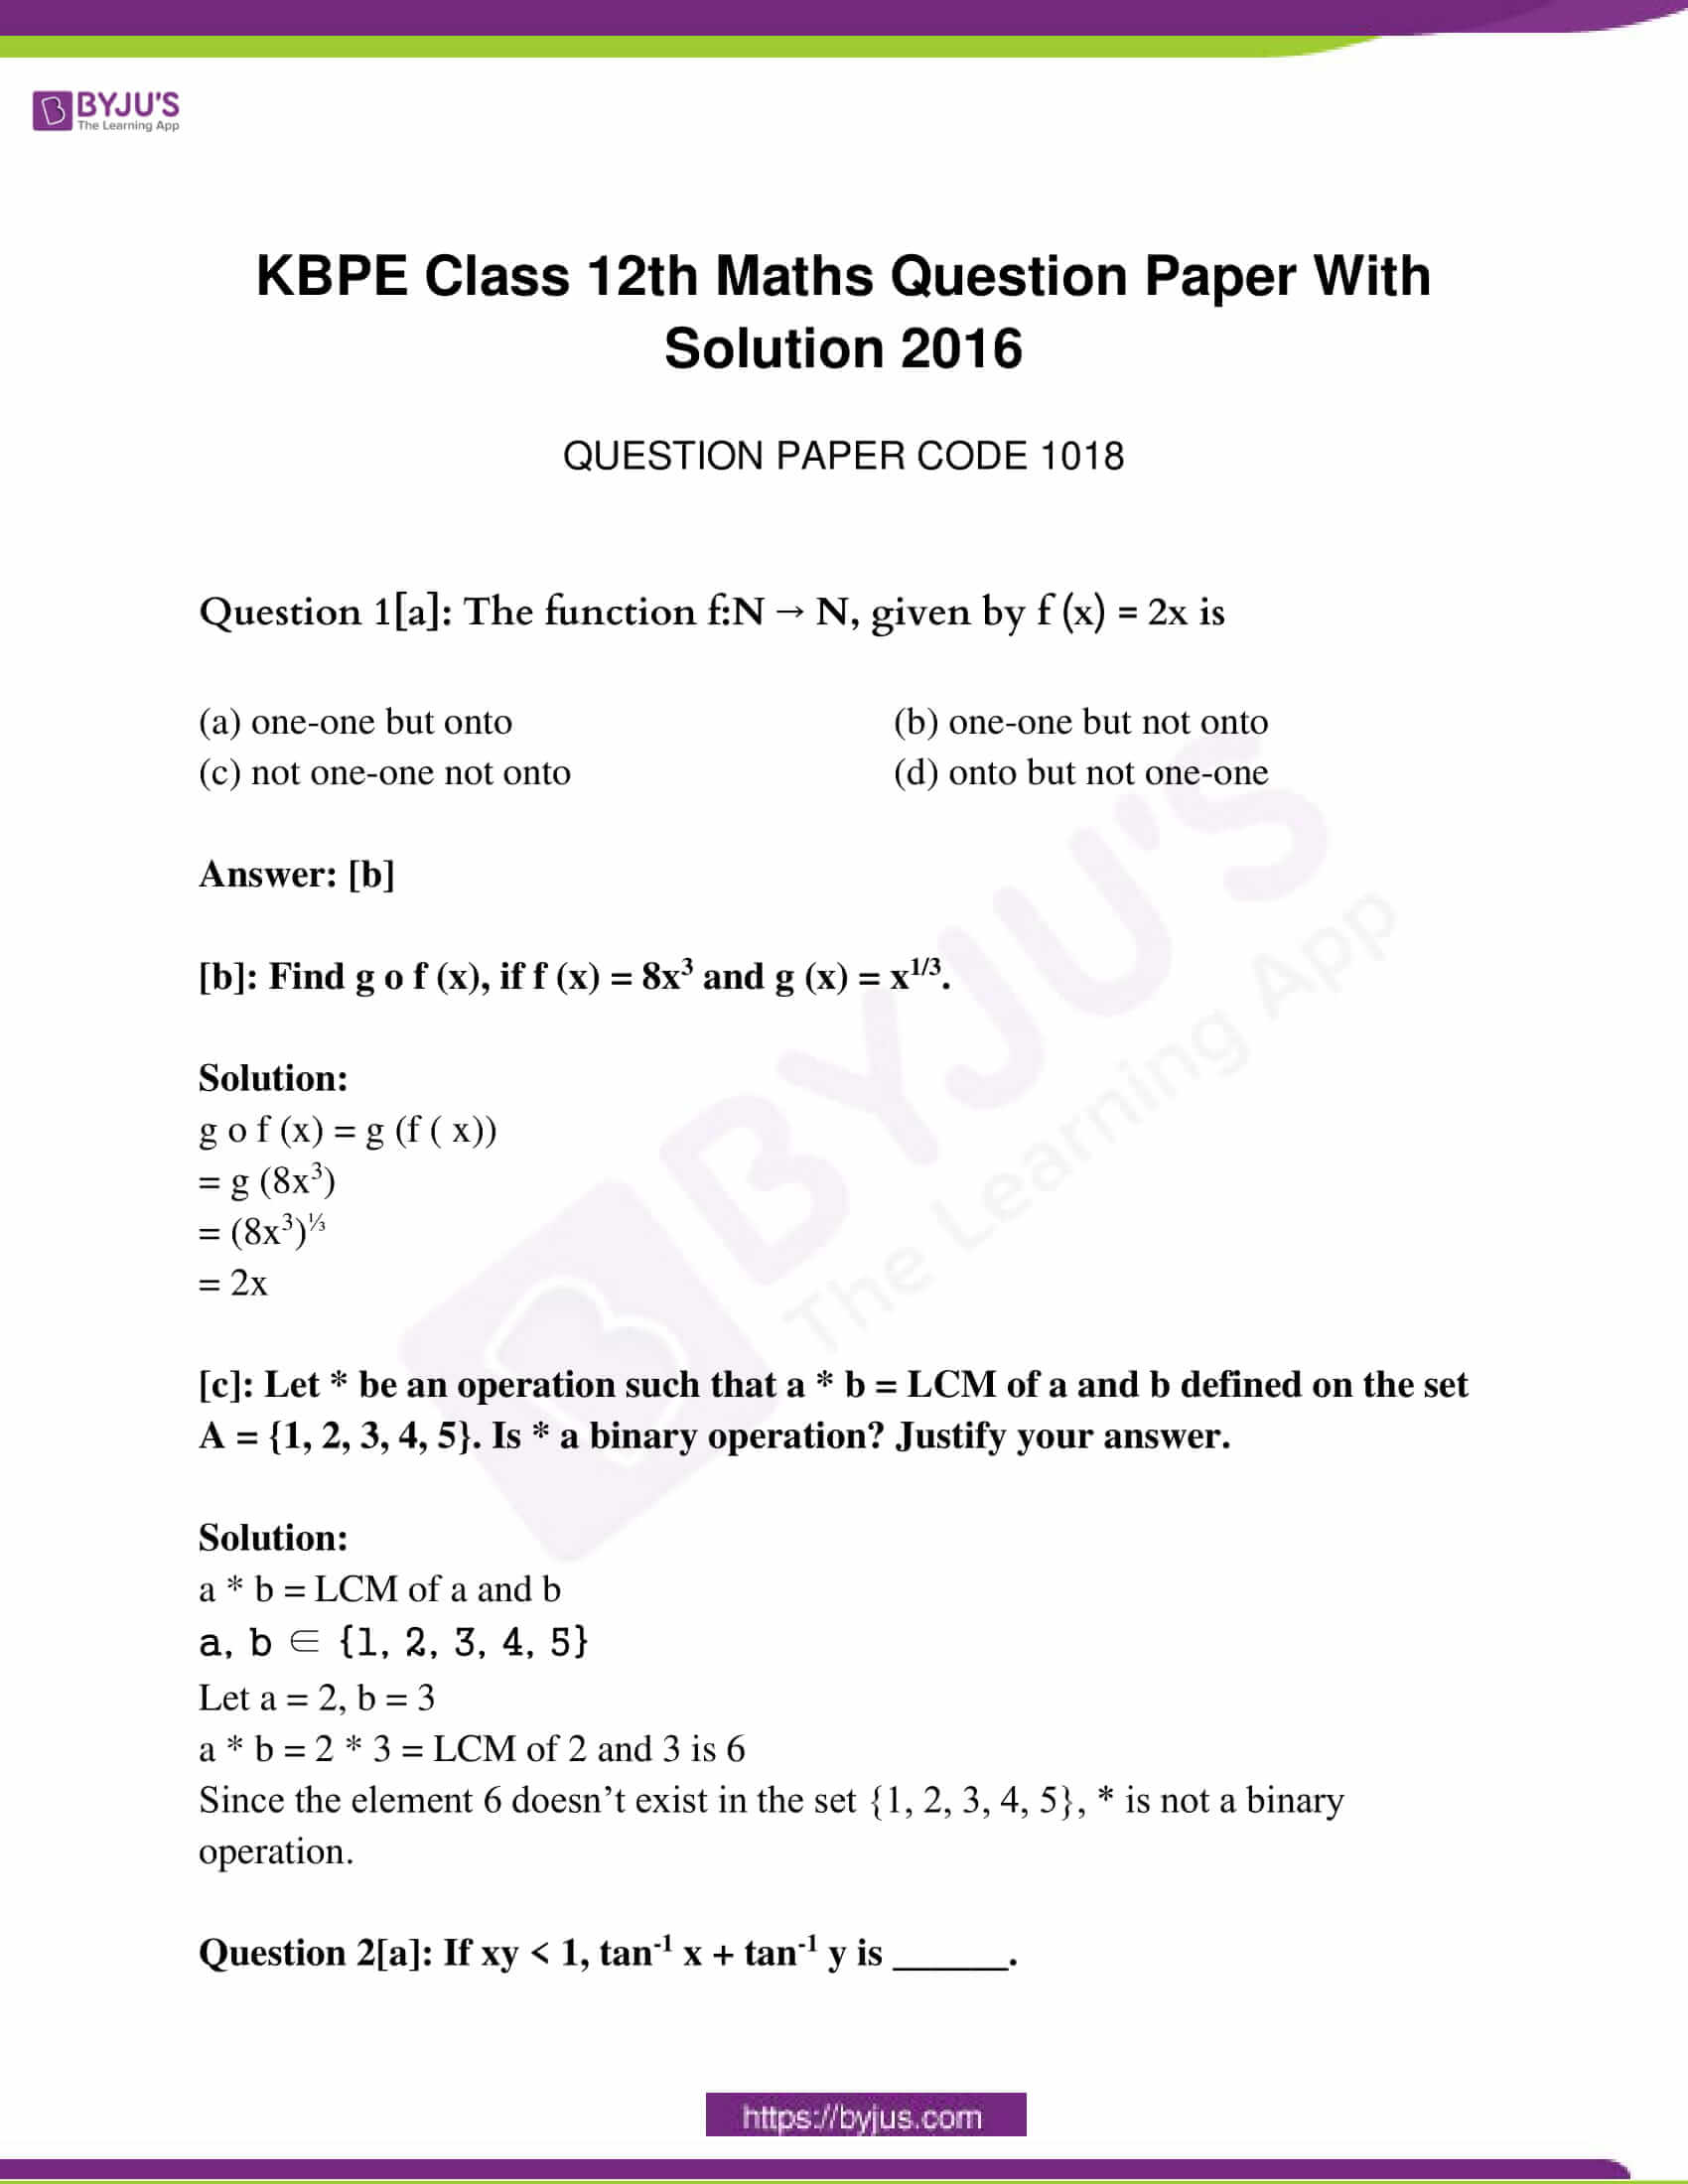 kerala class 12 examination question paper solutions march 2016 01